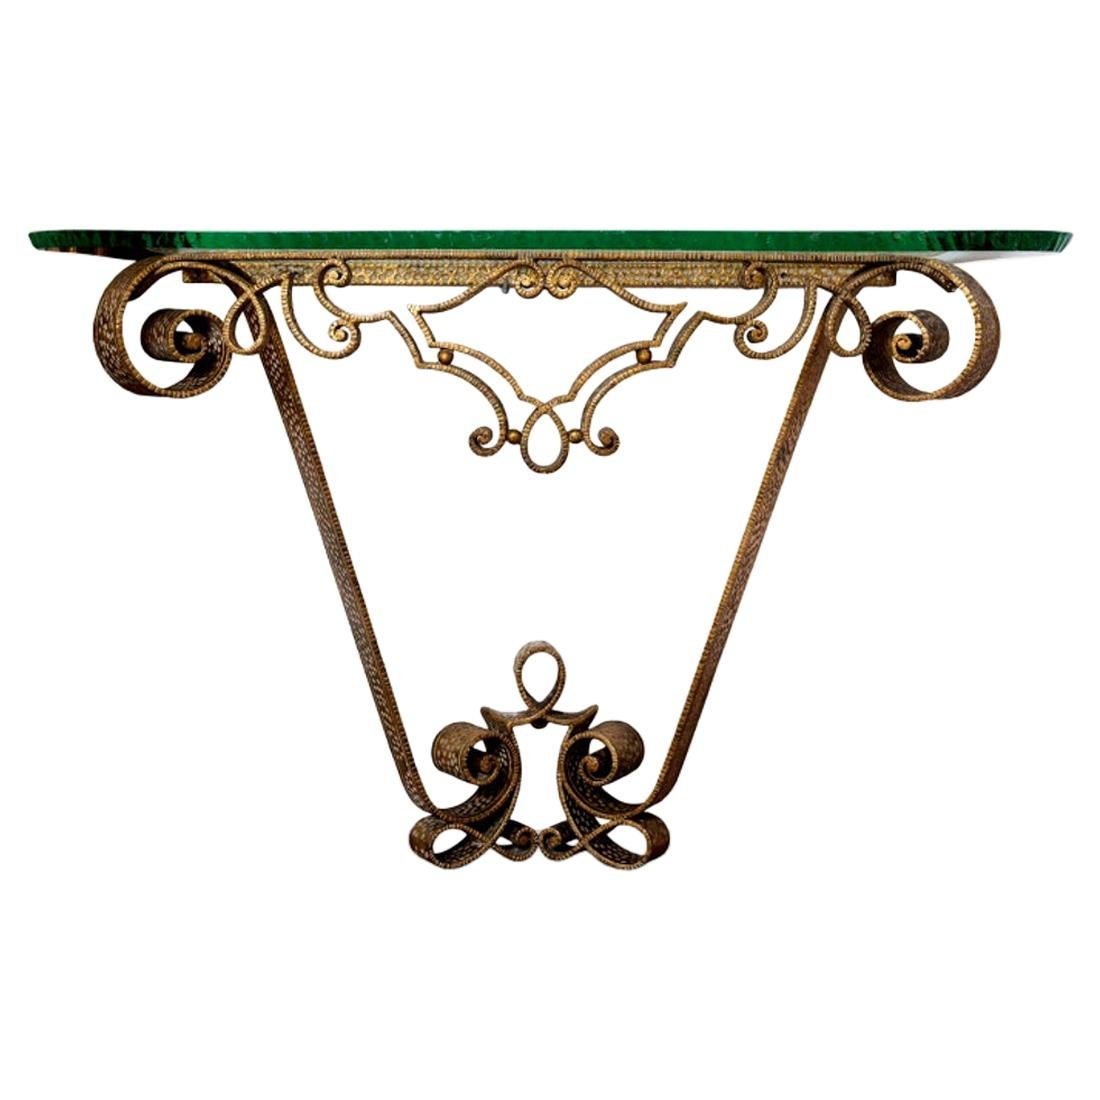 Pier Luigi Colli Gilded Wrought Iron and Crystal Console Table